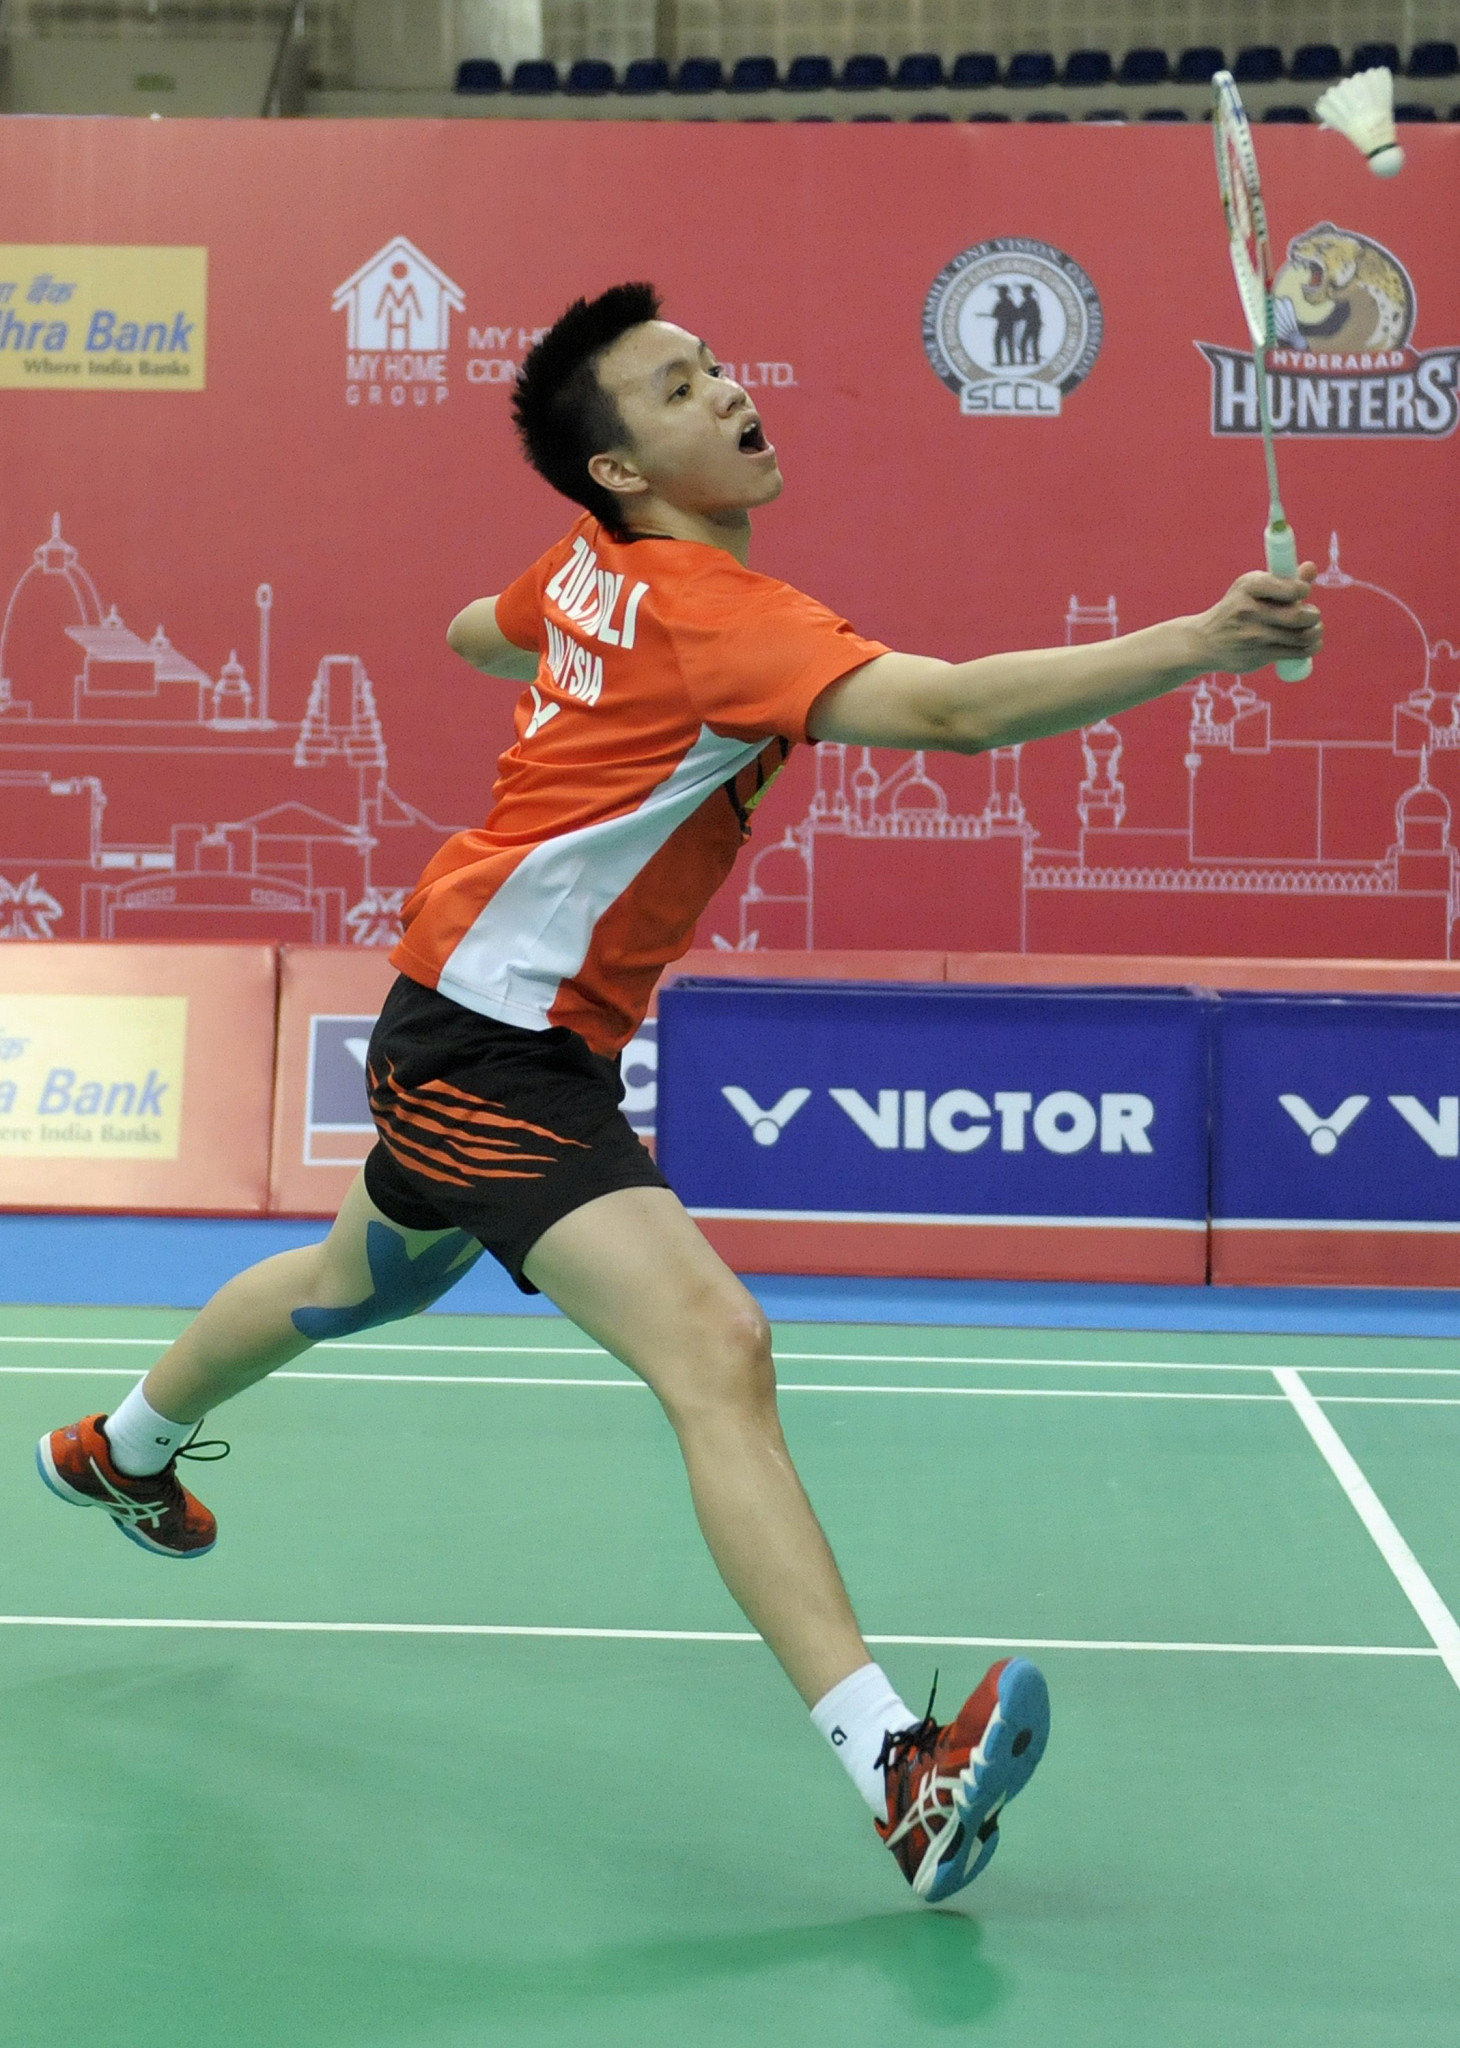 Zulfadli Zulkiffli was one of two Malaysian players given career-ending bans by the BWF in May ©Getty Images